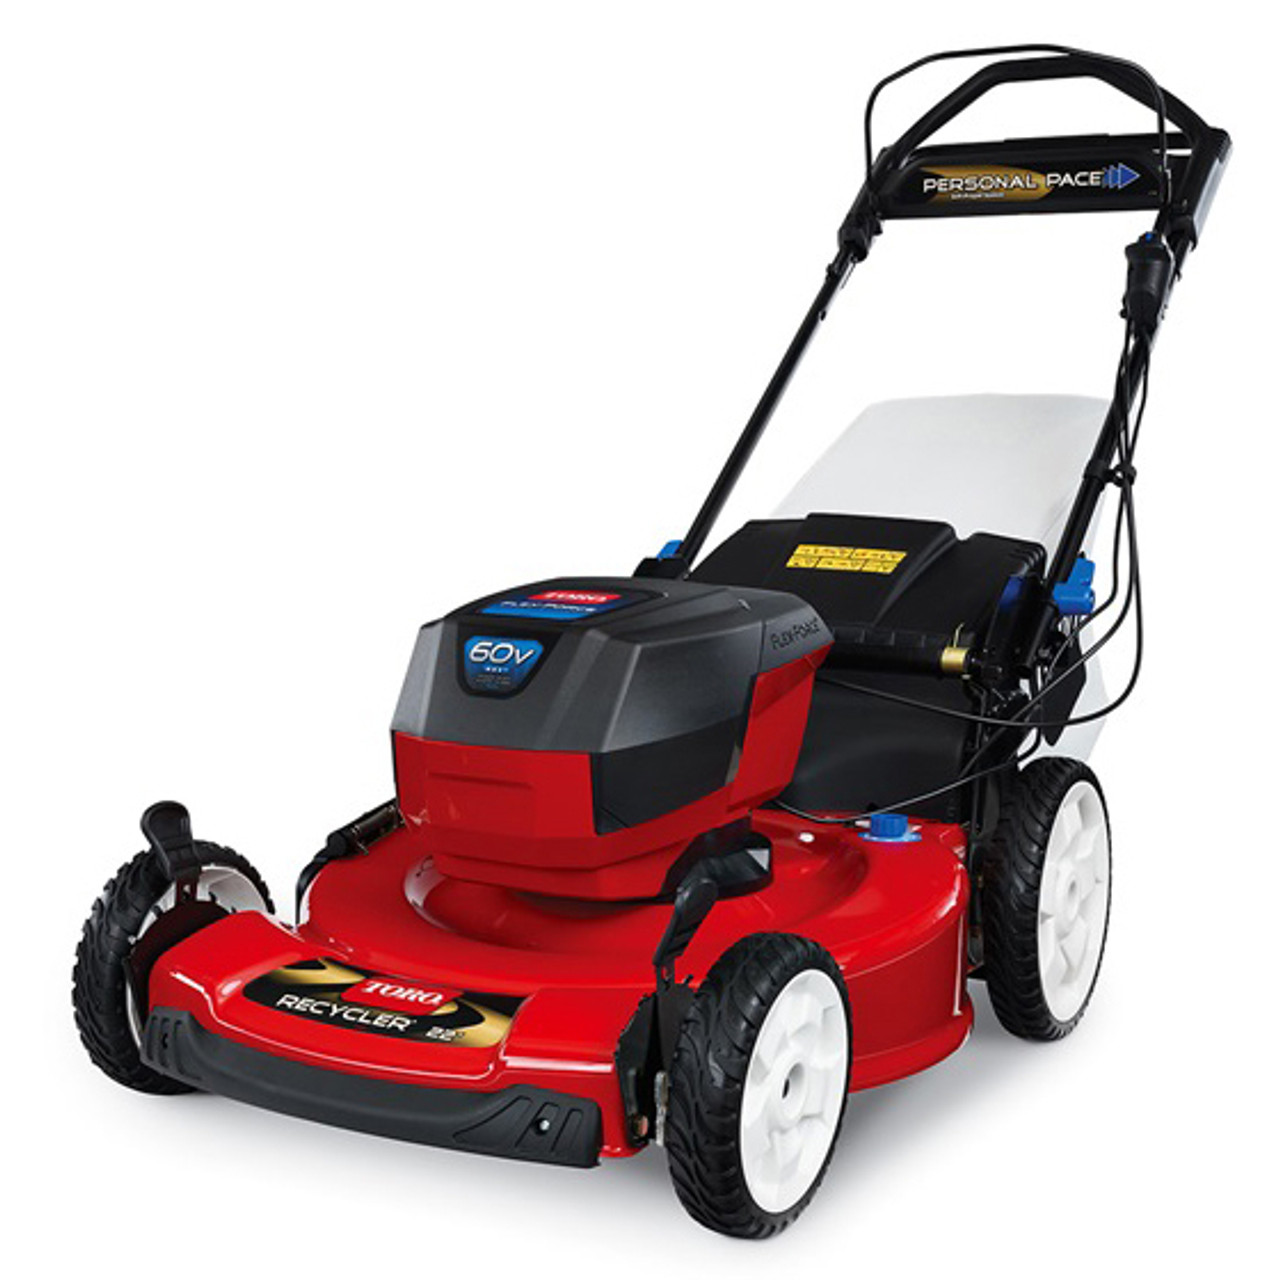 "Toro 20363 Recycler® 22"" Self-Propelled 60V Battery-Powered Walk Behind Lawn Mower w/ 6.0Ah Battery Image 2"